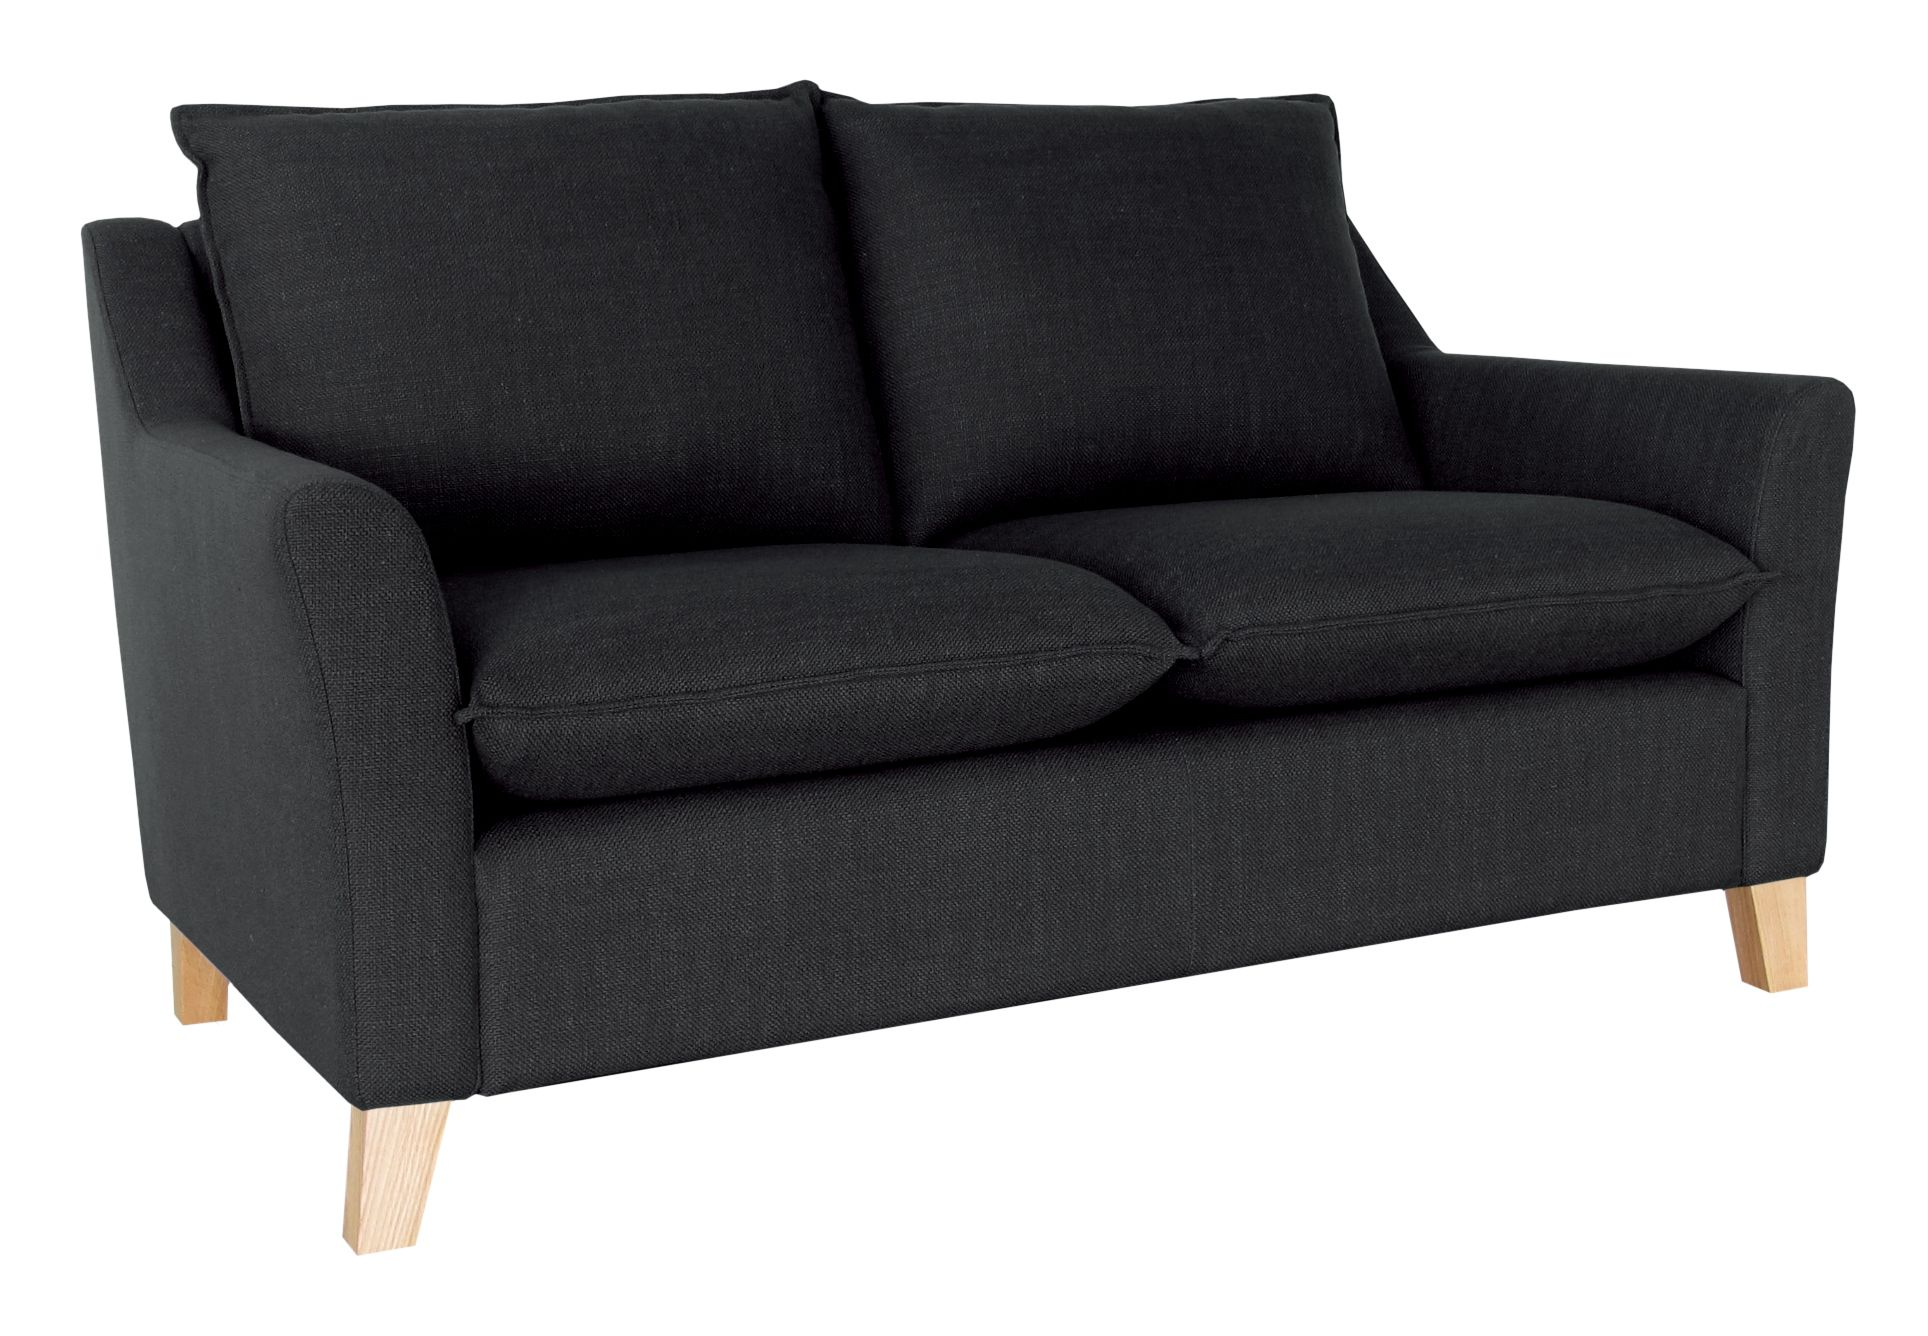 Capri small charcoal sofa